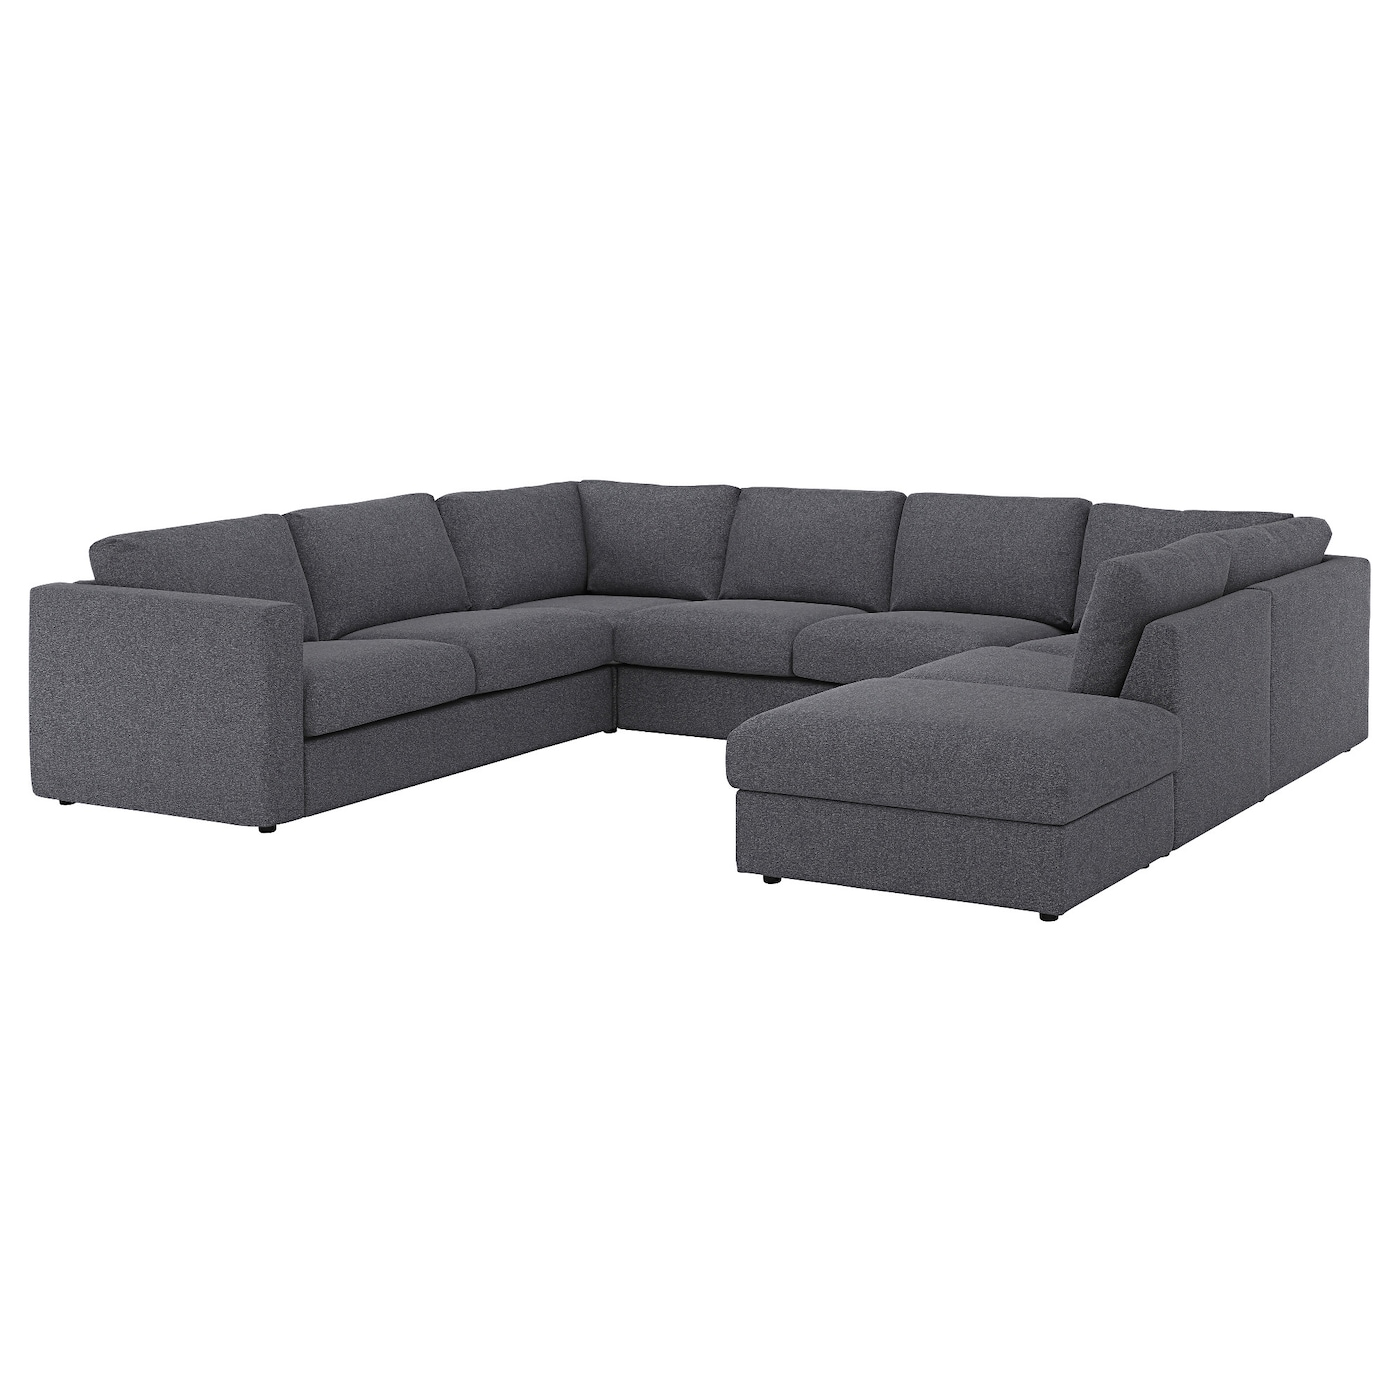 vimle u shaped sofa 6 seat with open end gunnared medium. Black Bedroom Furniture Sets. Home Design Ideas